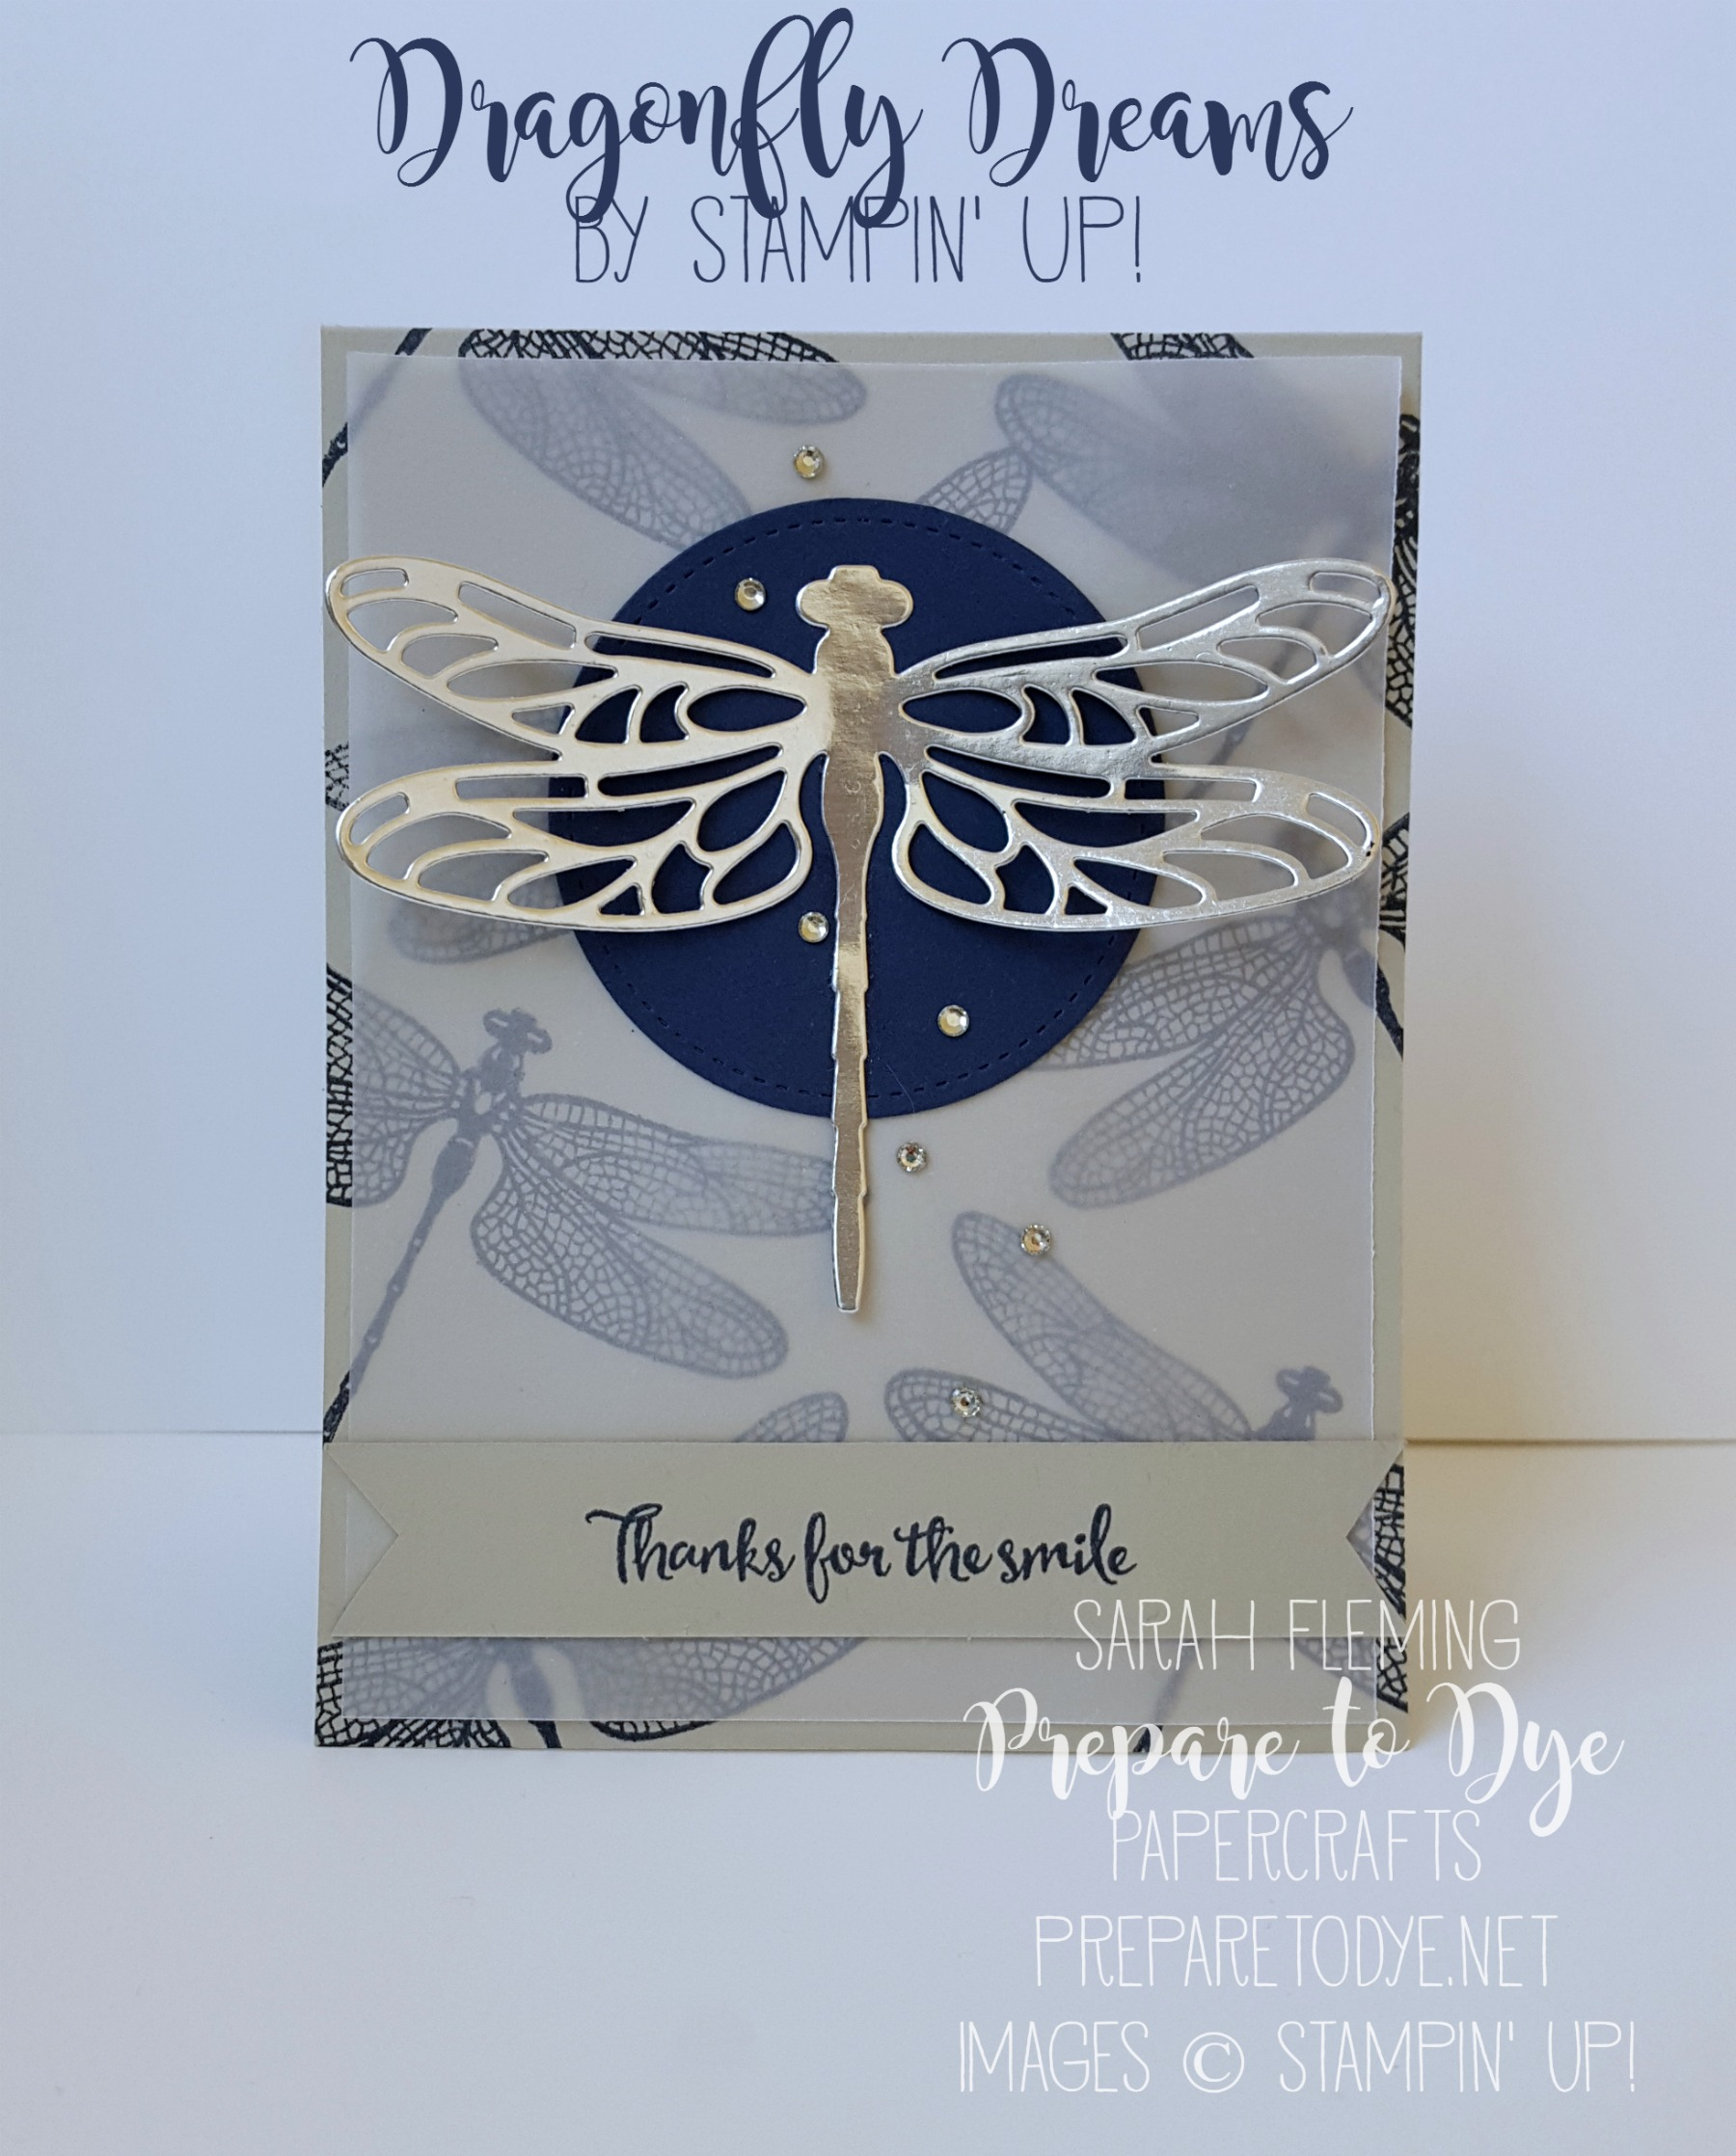 Stampin' Up! handmade masculine thank you card using Dragonfly Dreams stamps and Detailed Dragonfly Thinlits - Sarah Fleming - Prepare to Dye Papercrafts #GDP075